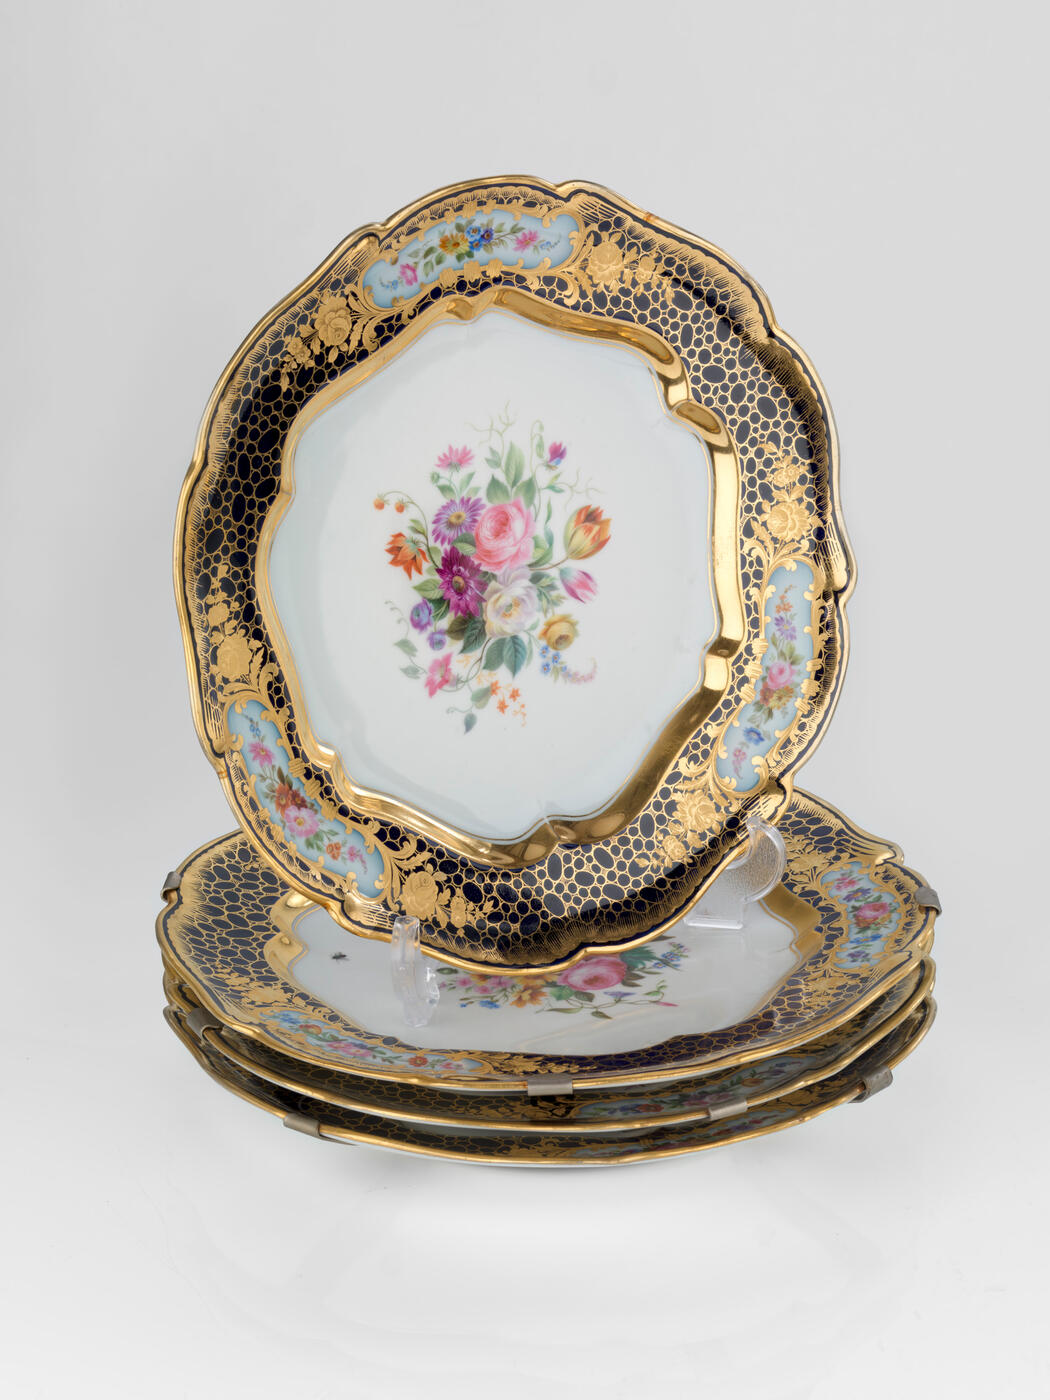 A Set of Four Dinner Plates from the Sèvres Service